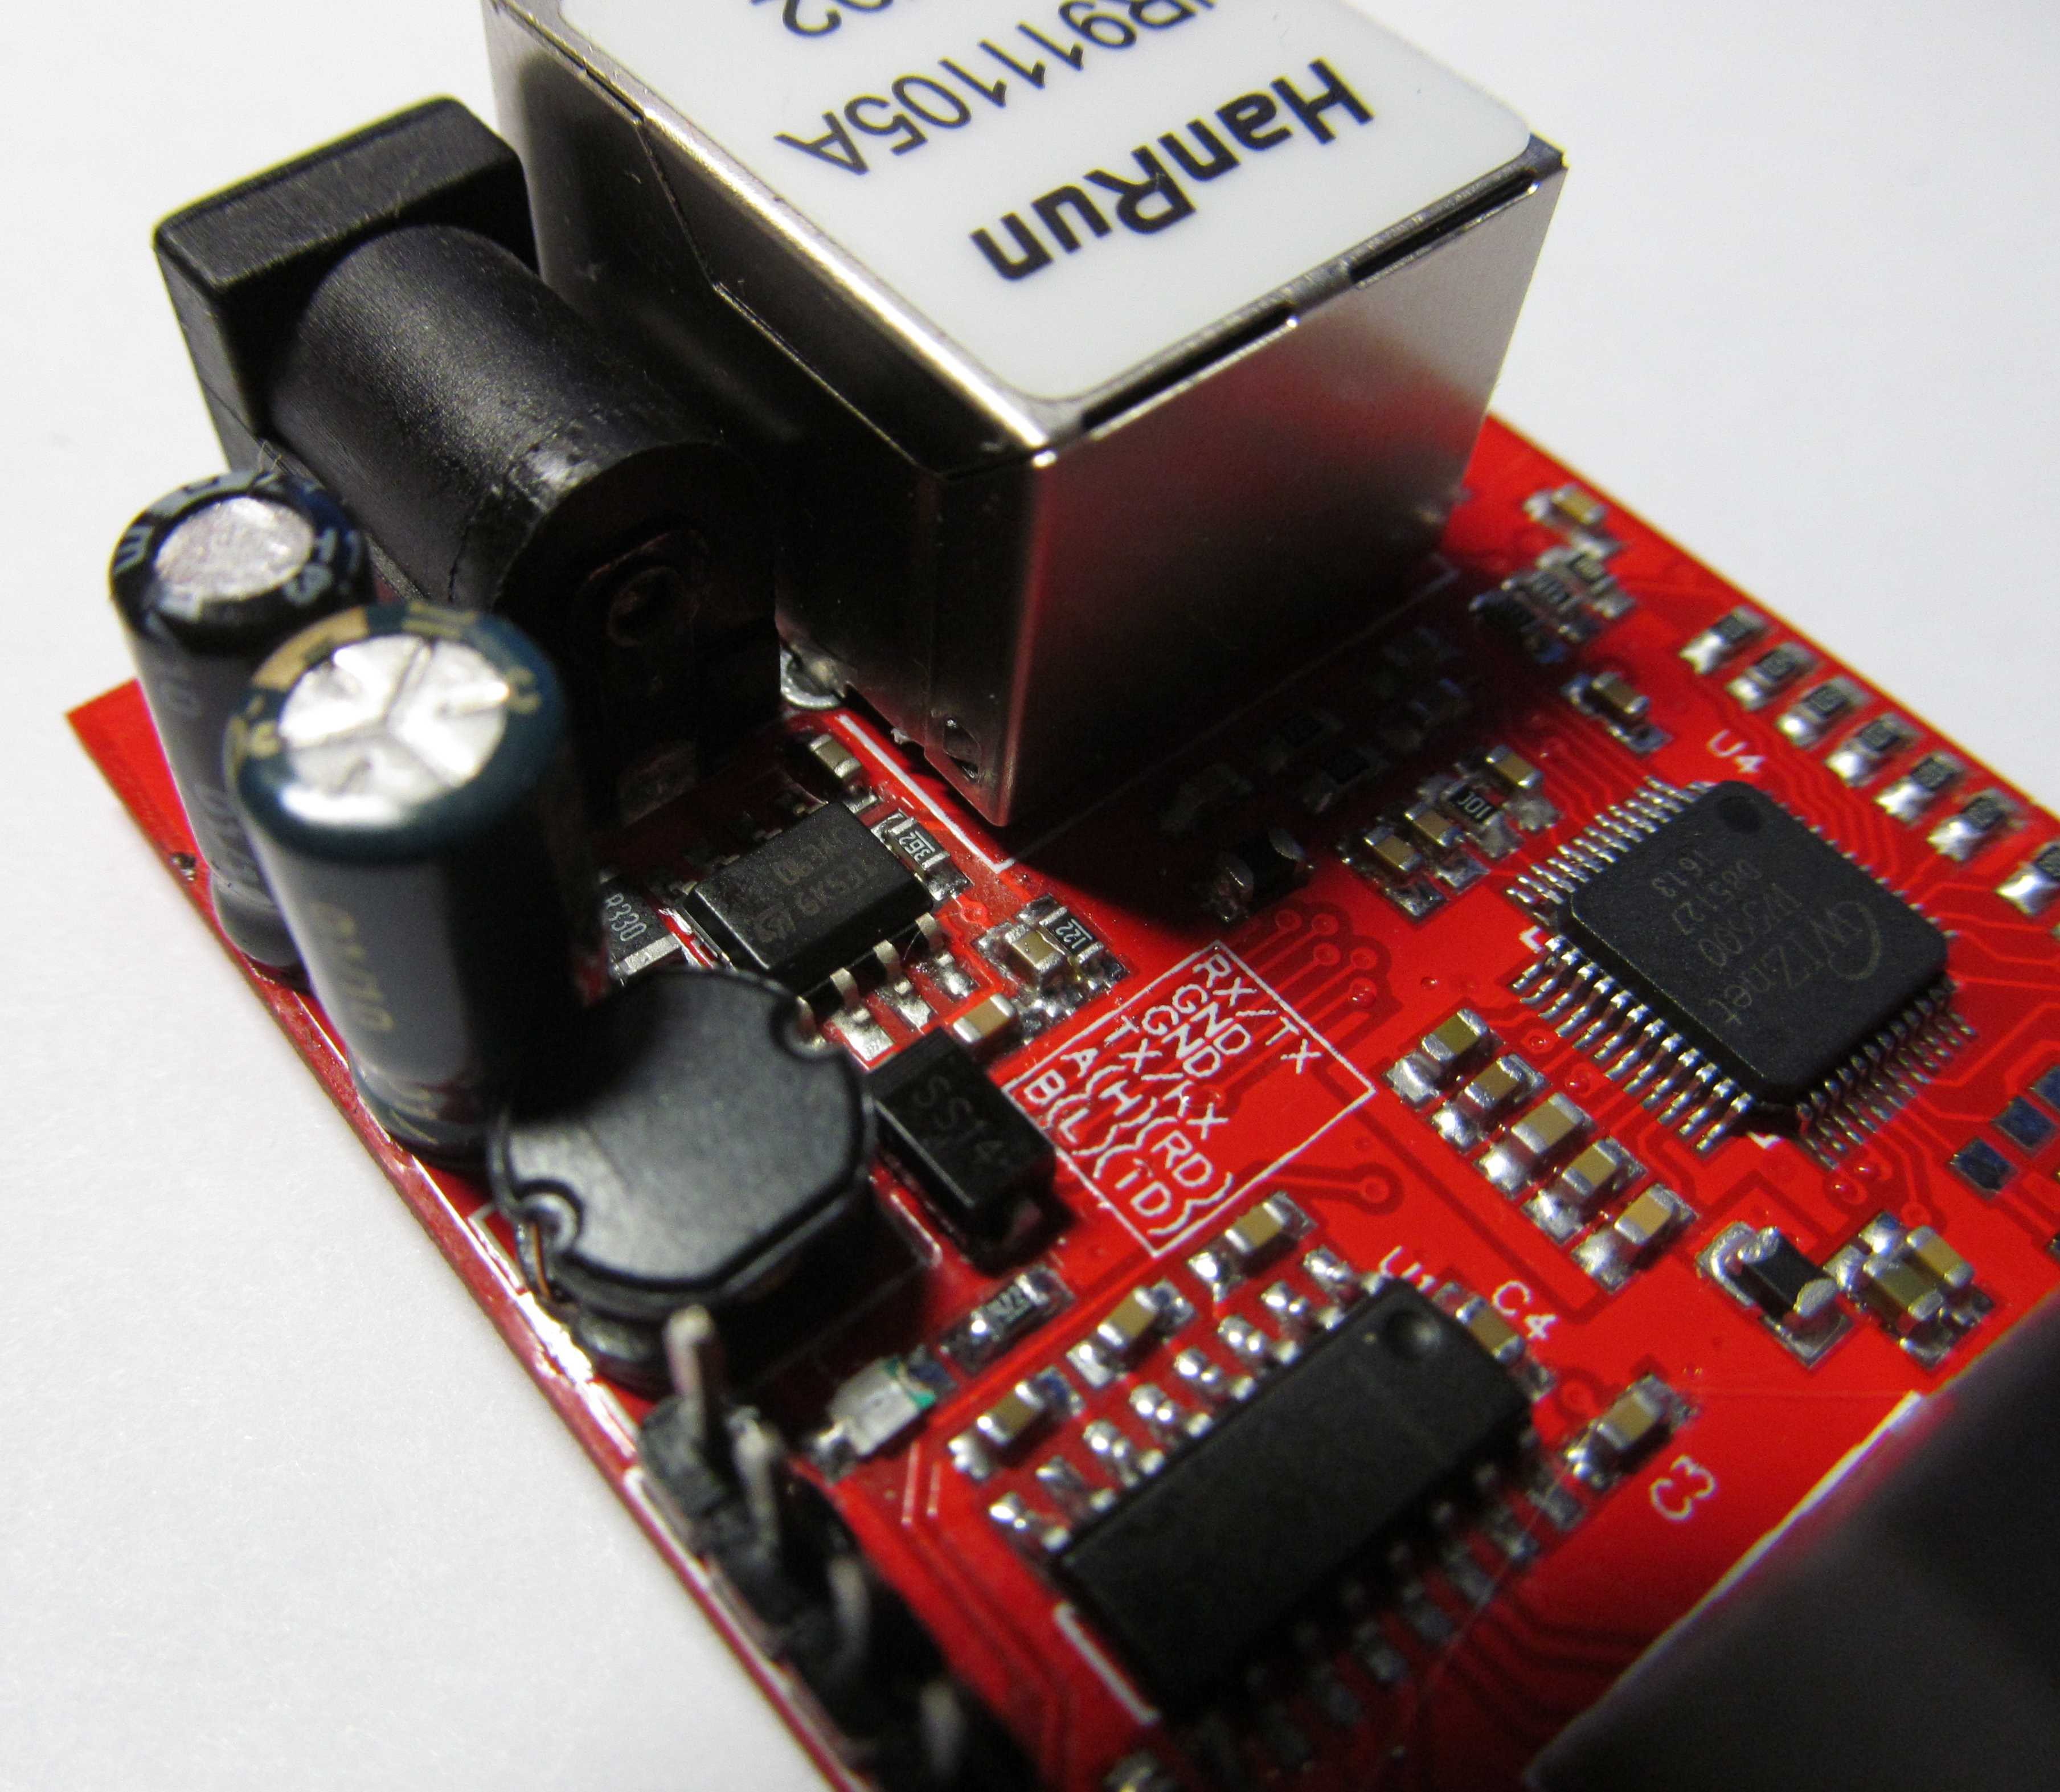 Шлюз RS232, CAN, RS485 to Ethernet MQTT на Atmega328